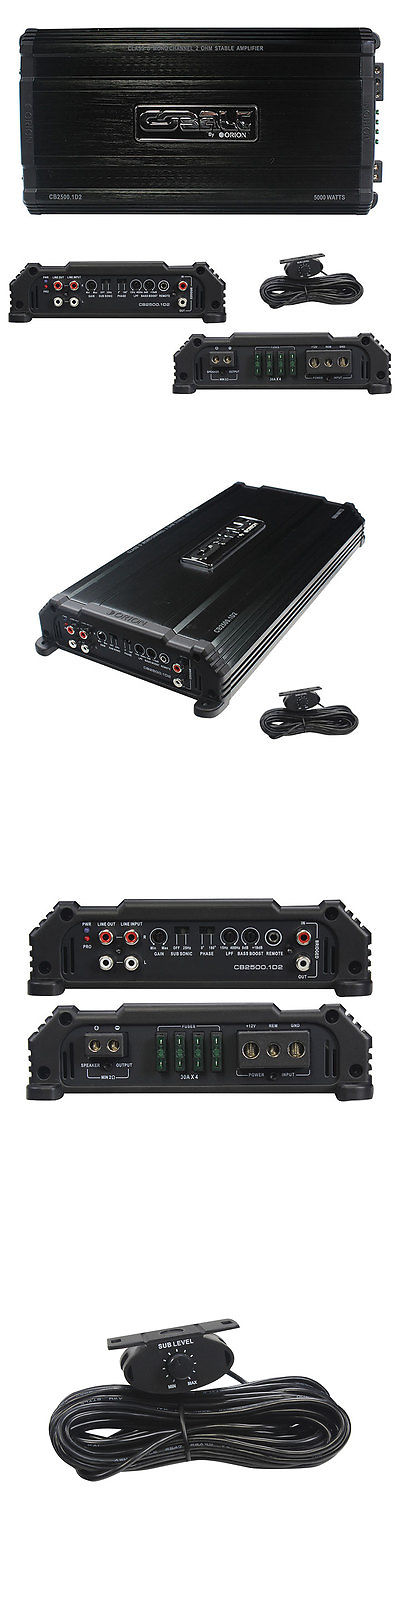 Car Amplifiers: Orion Cb25001d2 Cobalt D Class 2 Ohm Stable Amplifier 5000 Watts @ 2 Ohm -> BUY IT NOW ONLY: $176.29 on eBay!